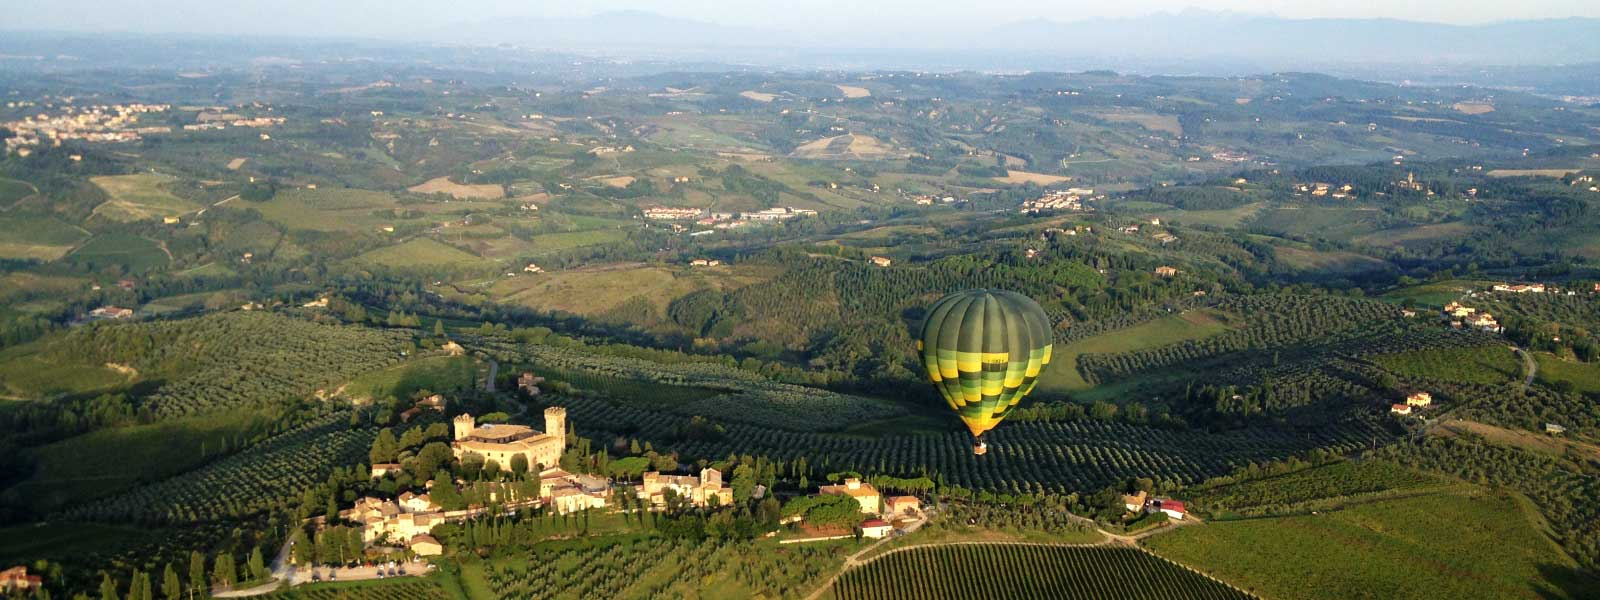 Castello-di-Poppiano-hot-air-ballooning